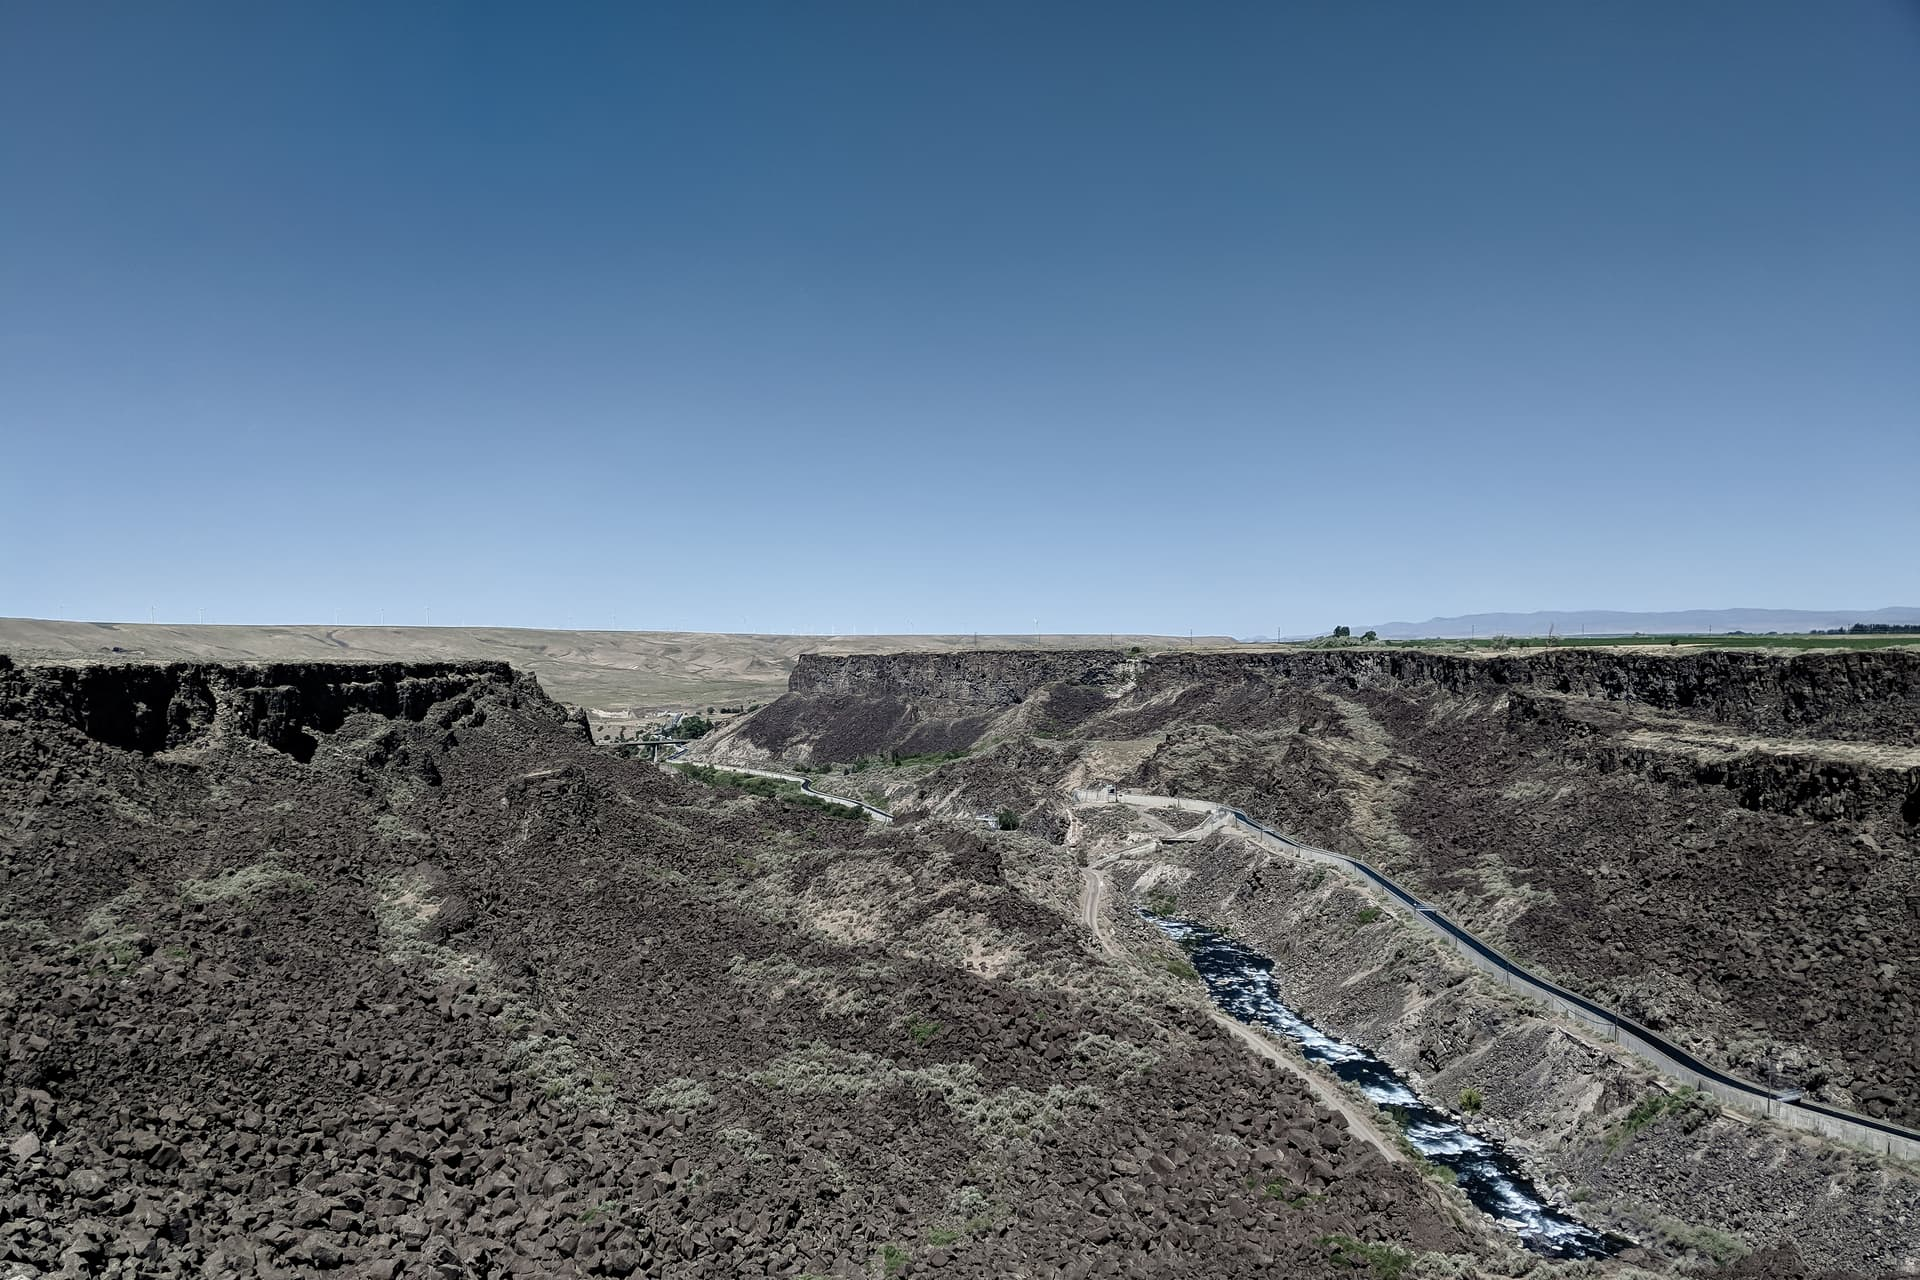 A river cuts a deep, sheer canyon through the basalt underlying otherwise empty desert scrubland. To the right of the river is a raised concrete irrigation canal.